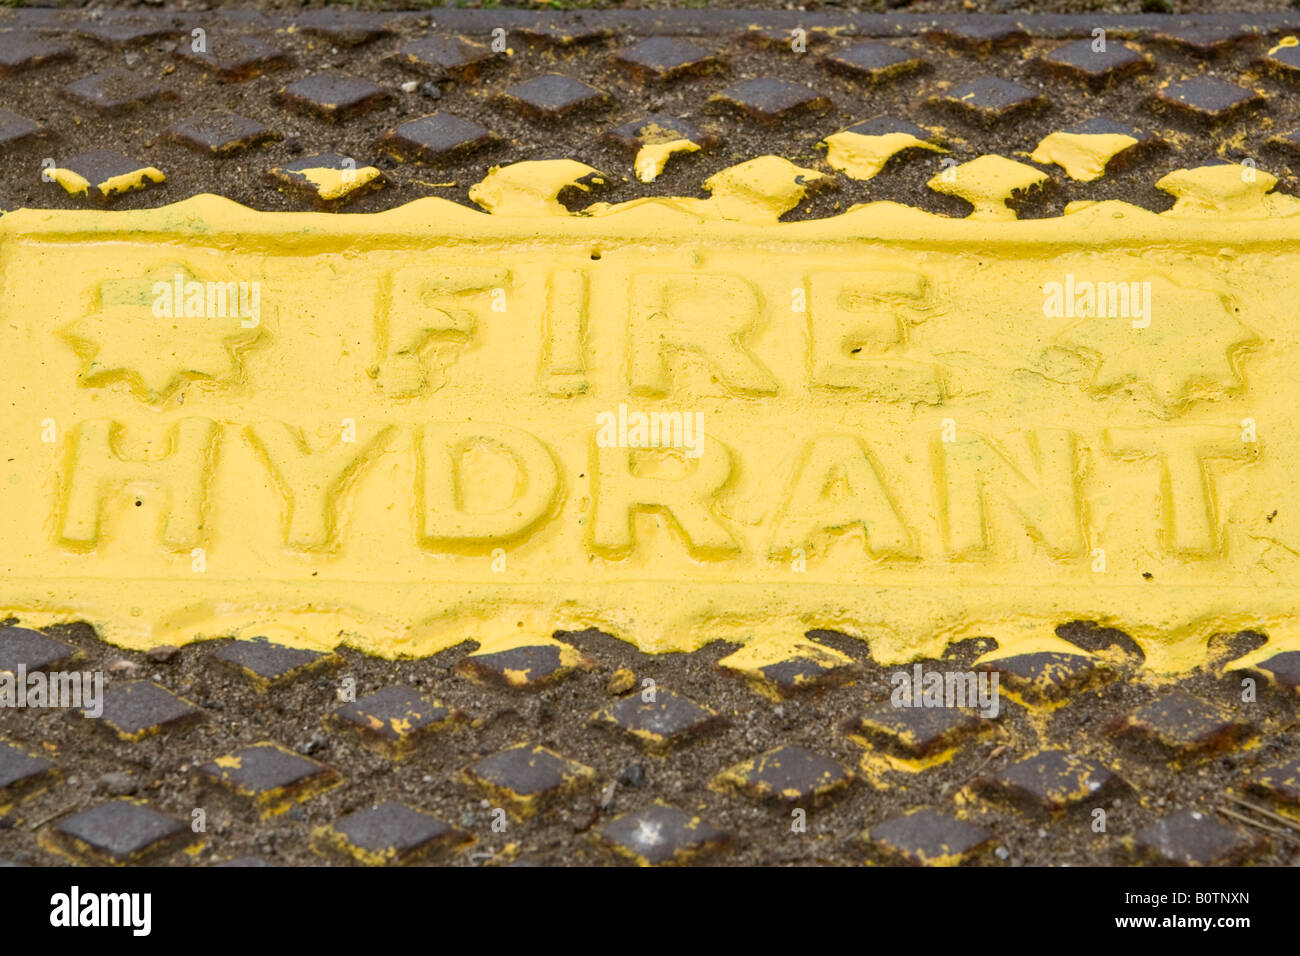 Fire hydrant sign, UK. - Stock Image